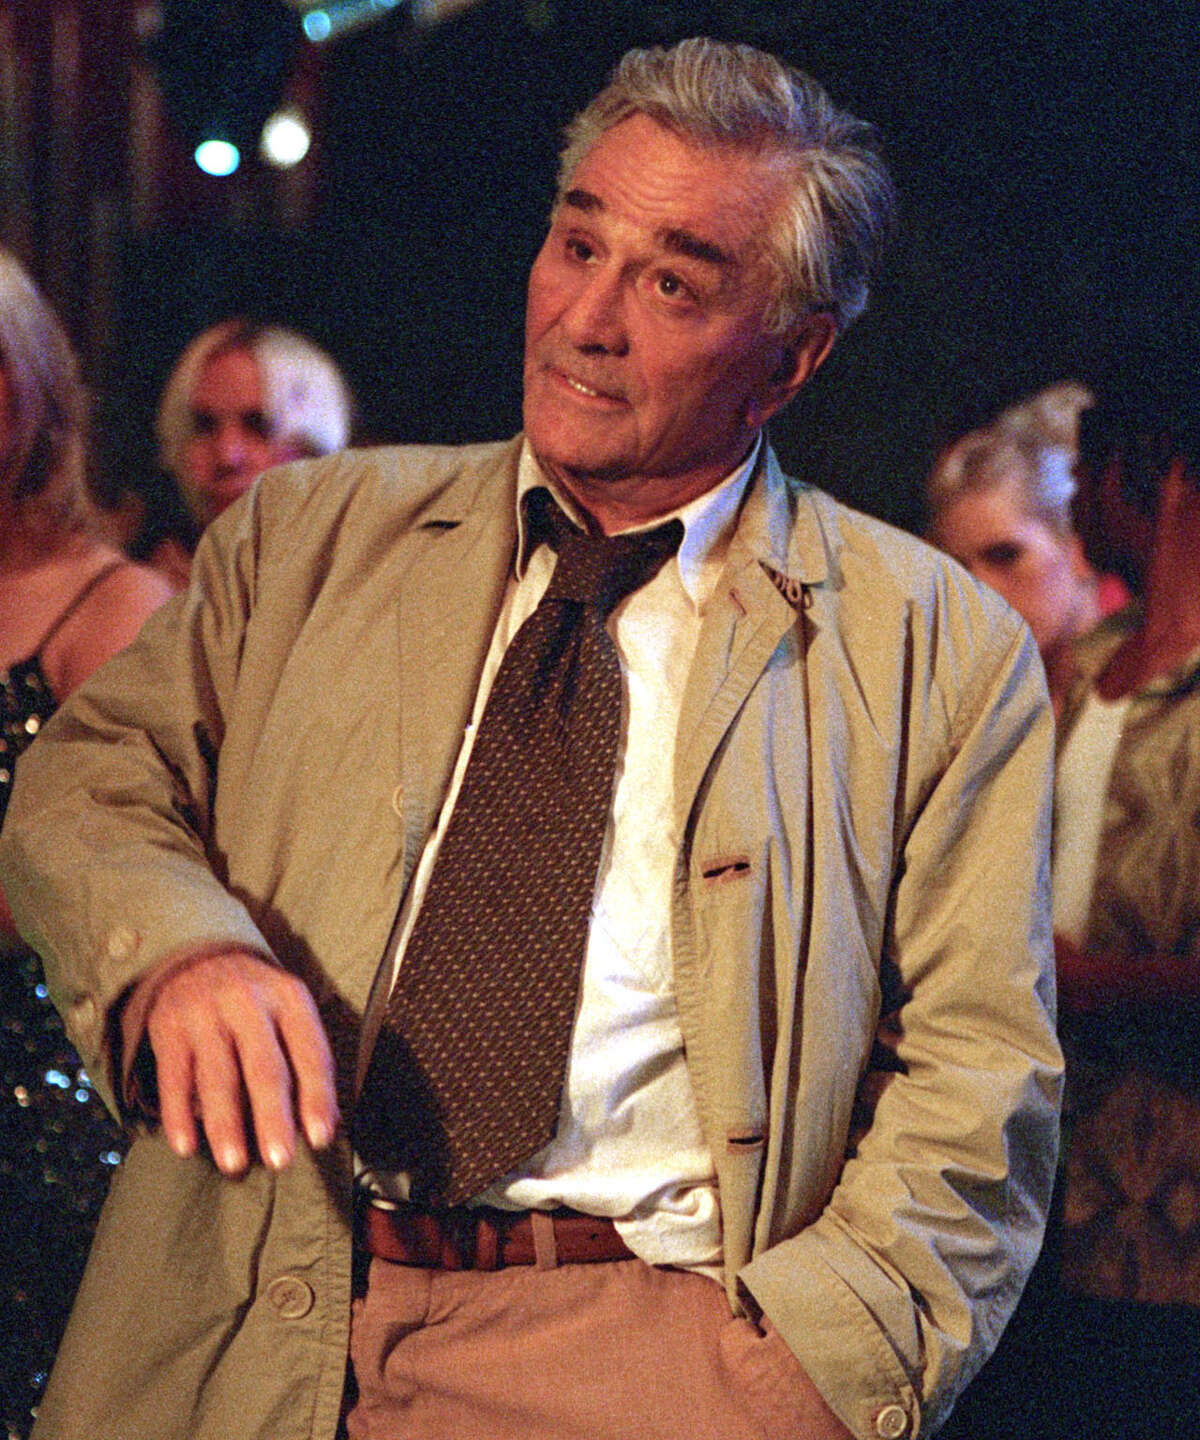 """66253_34_33 -- COLUMBO LIKES THE NIGHTLIFE -- Five-time Emmy winner Peter Falk returns as everyone s favorite rumpled detective, Lt. Columbo, in a two-hour film, """"Columbo Likes The Nightlife,"""" airing THURSDAY, JANUARY 30 (8:00-10:00 p.m., ET) on the ABC Television Network. In this all-new mystery, Columbo finds himself in the unlikeliest of places the Los Angeles rave scene as he investigates the supposed """"suicide"""" of a tabloid reporter and the """"disappearance"""" of a notorious mobster's son."""